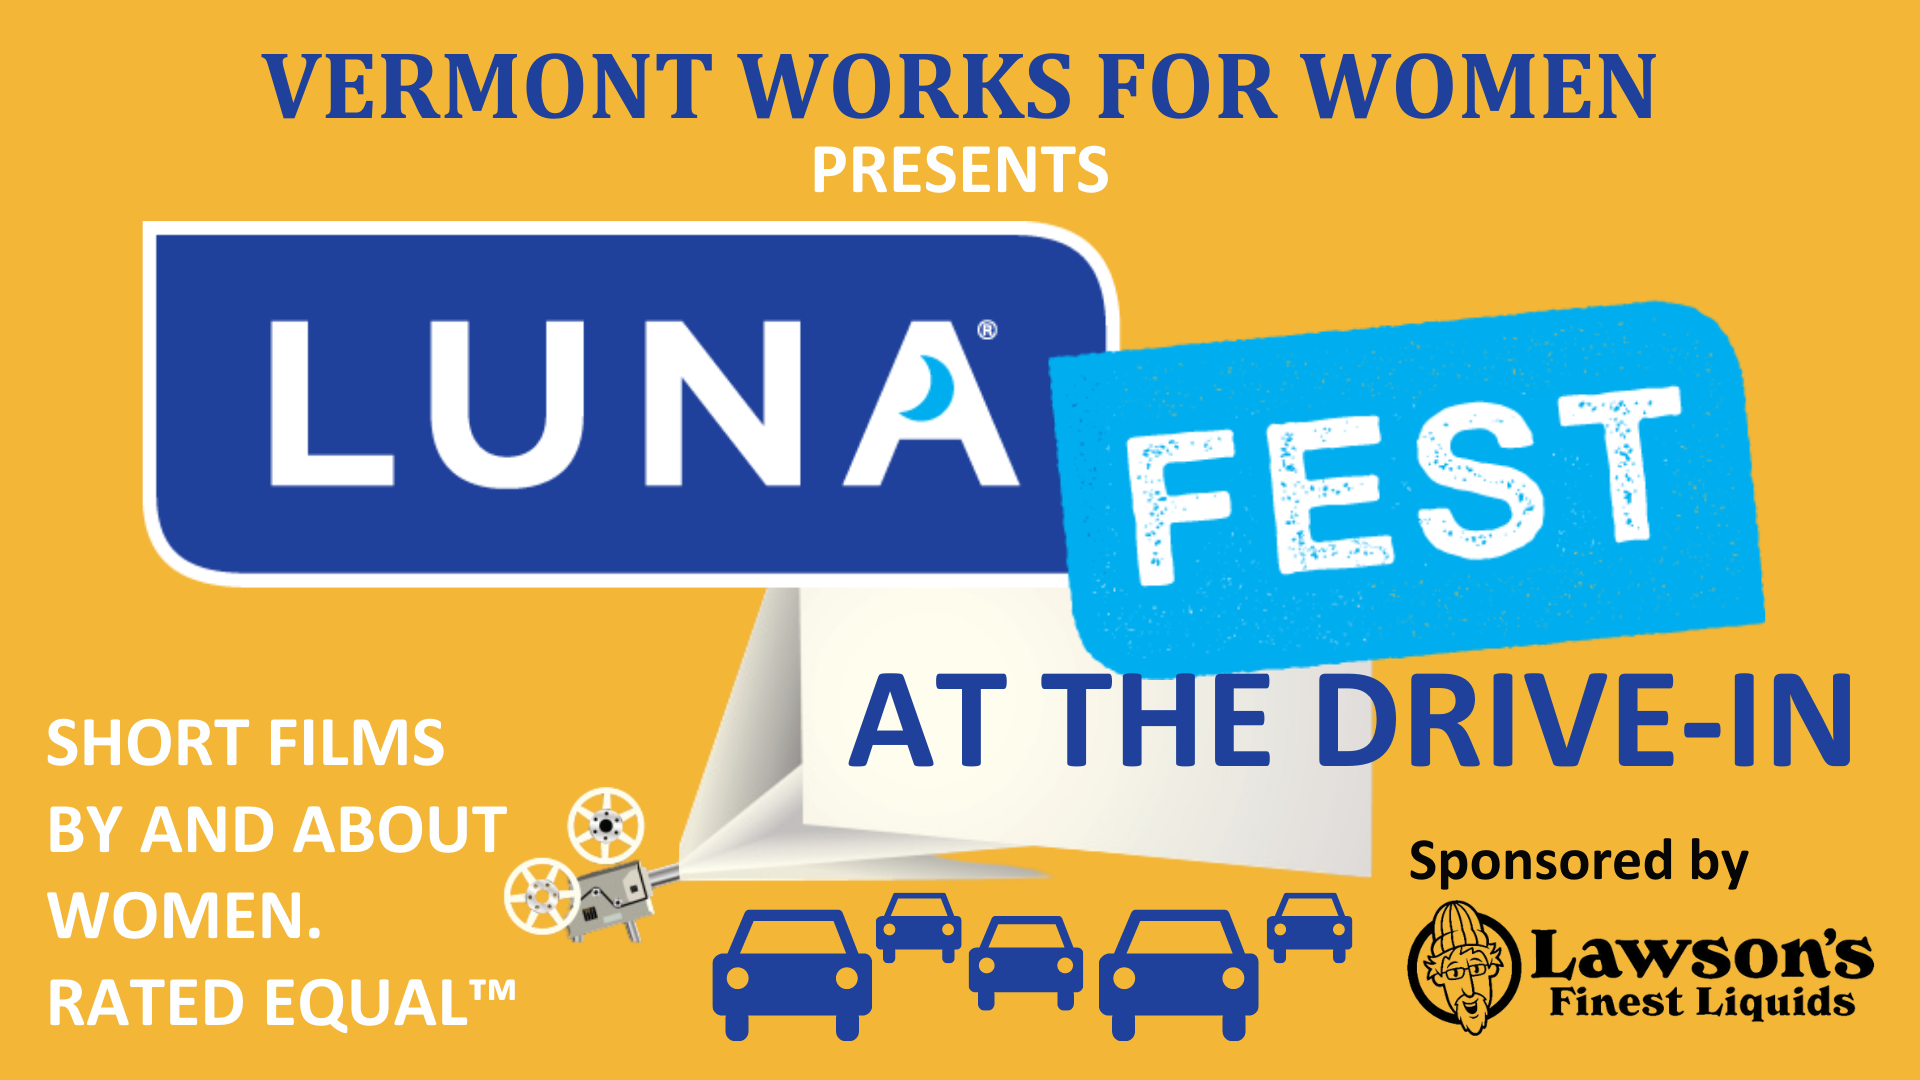 Lunafest at the Drive-In